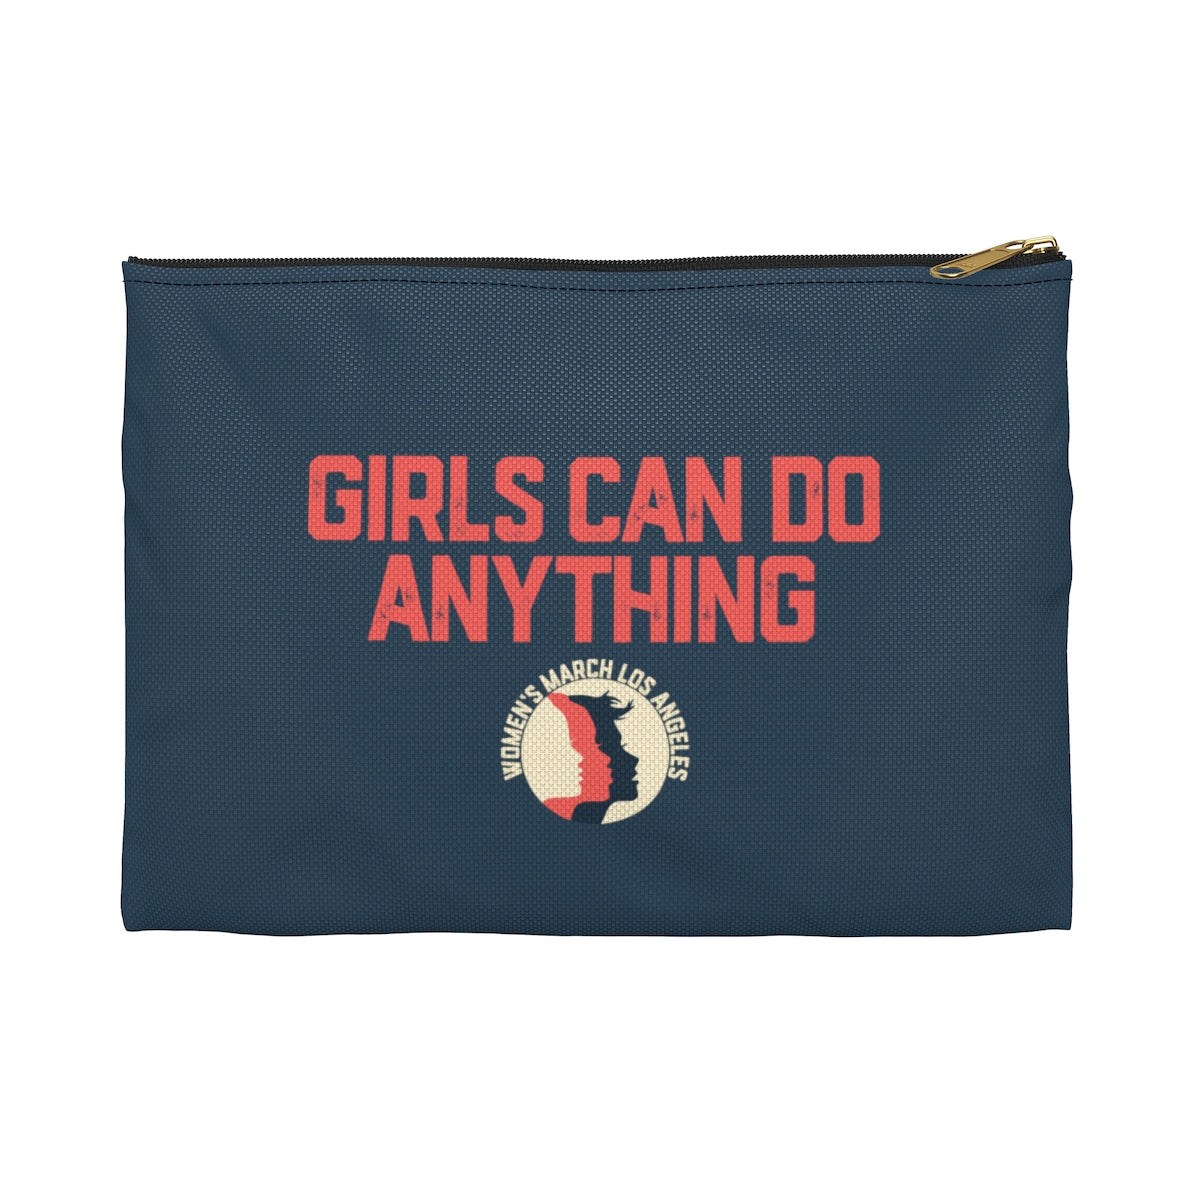 Girls can do anything Accessory Pouch